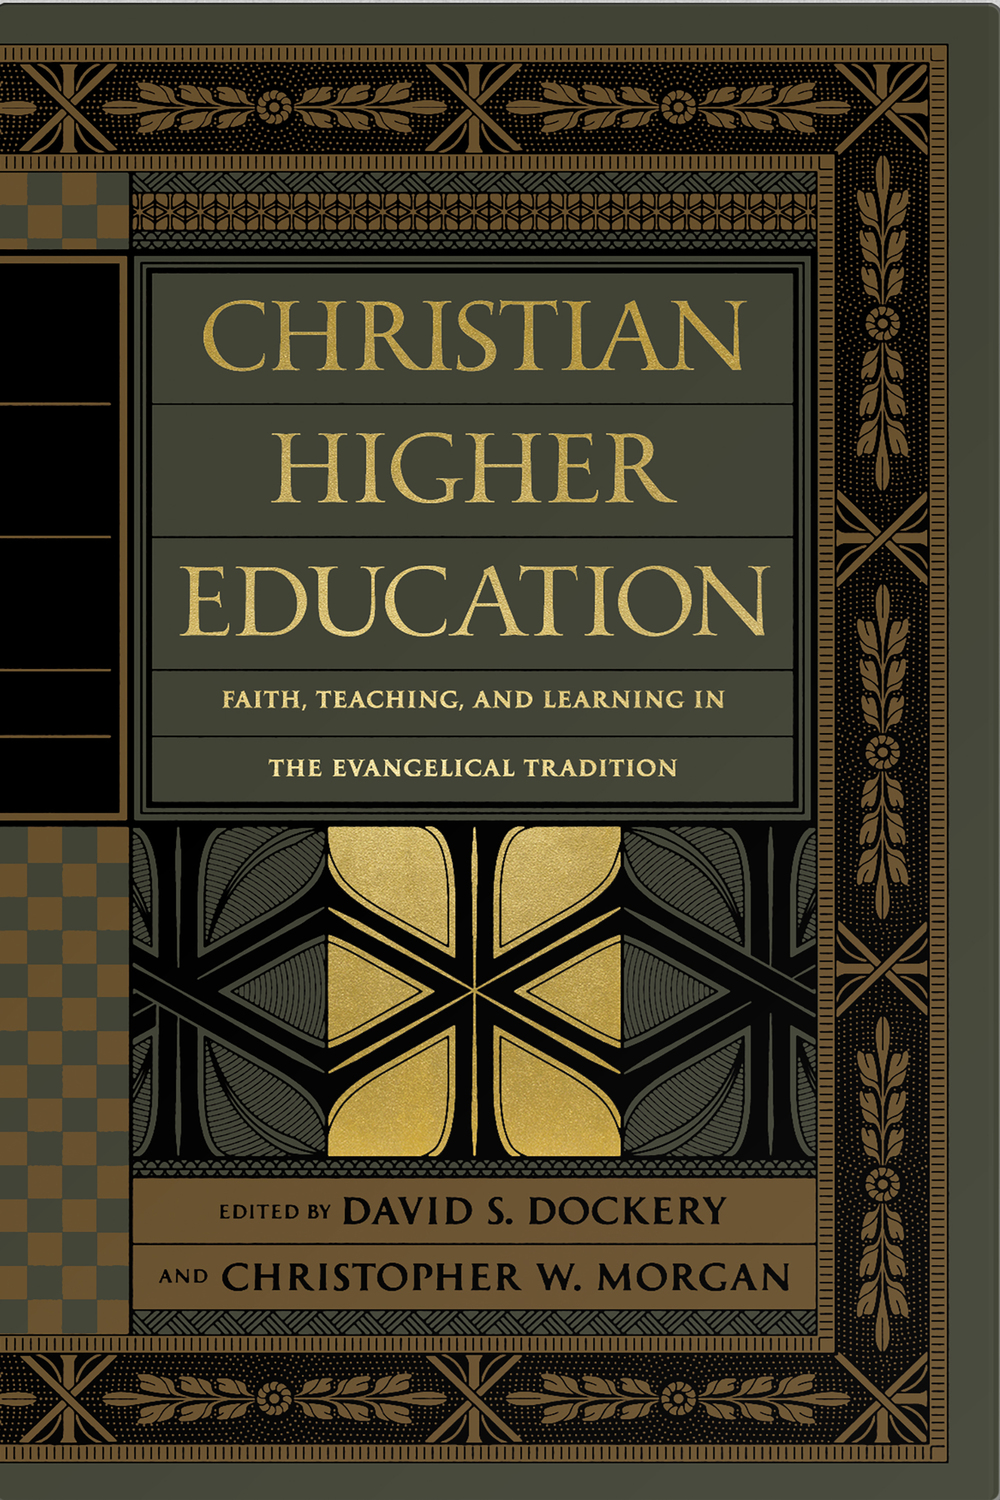 Christian Higher Education